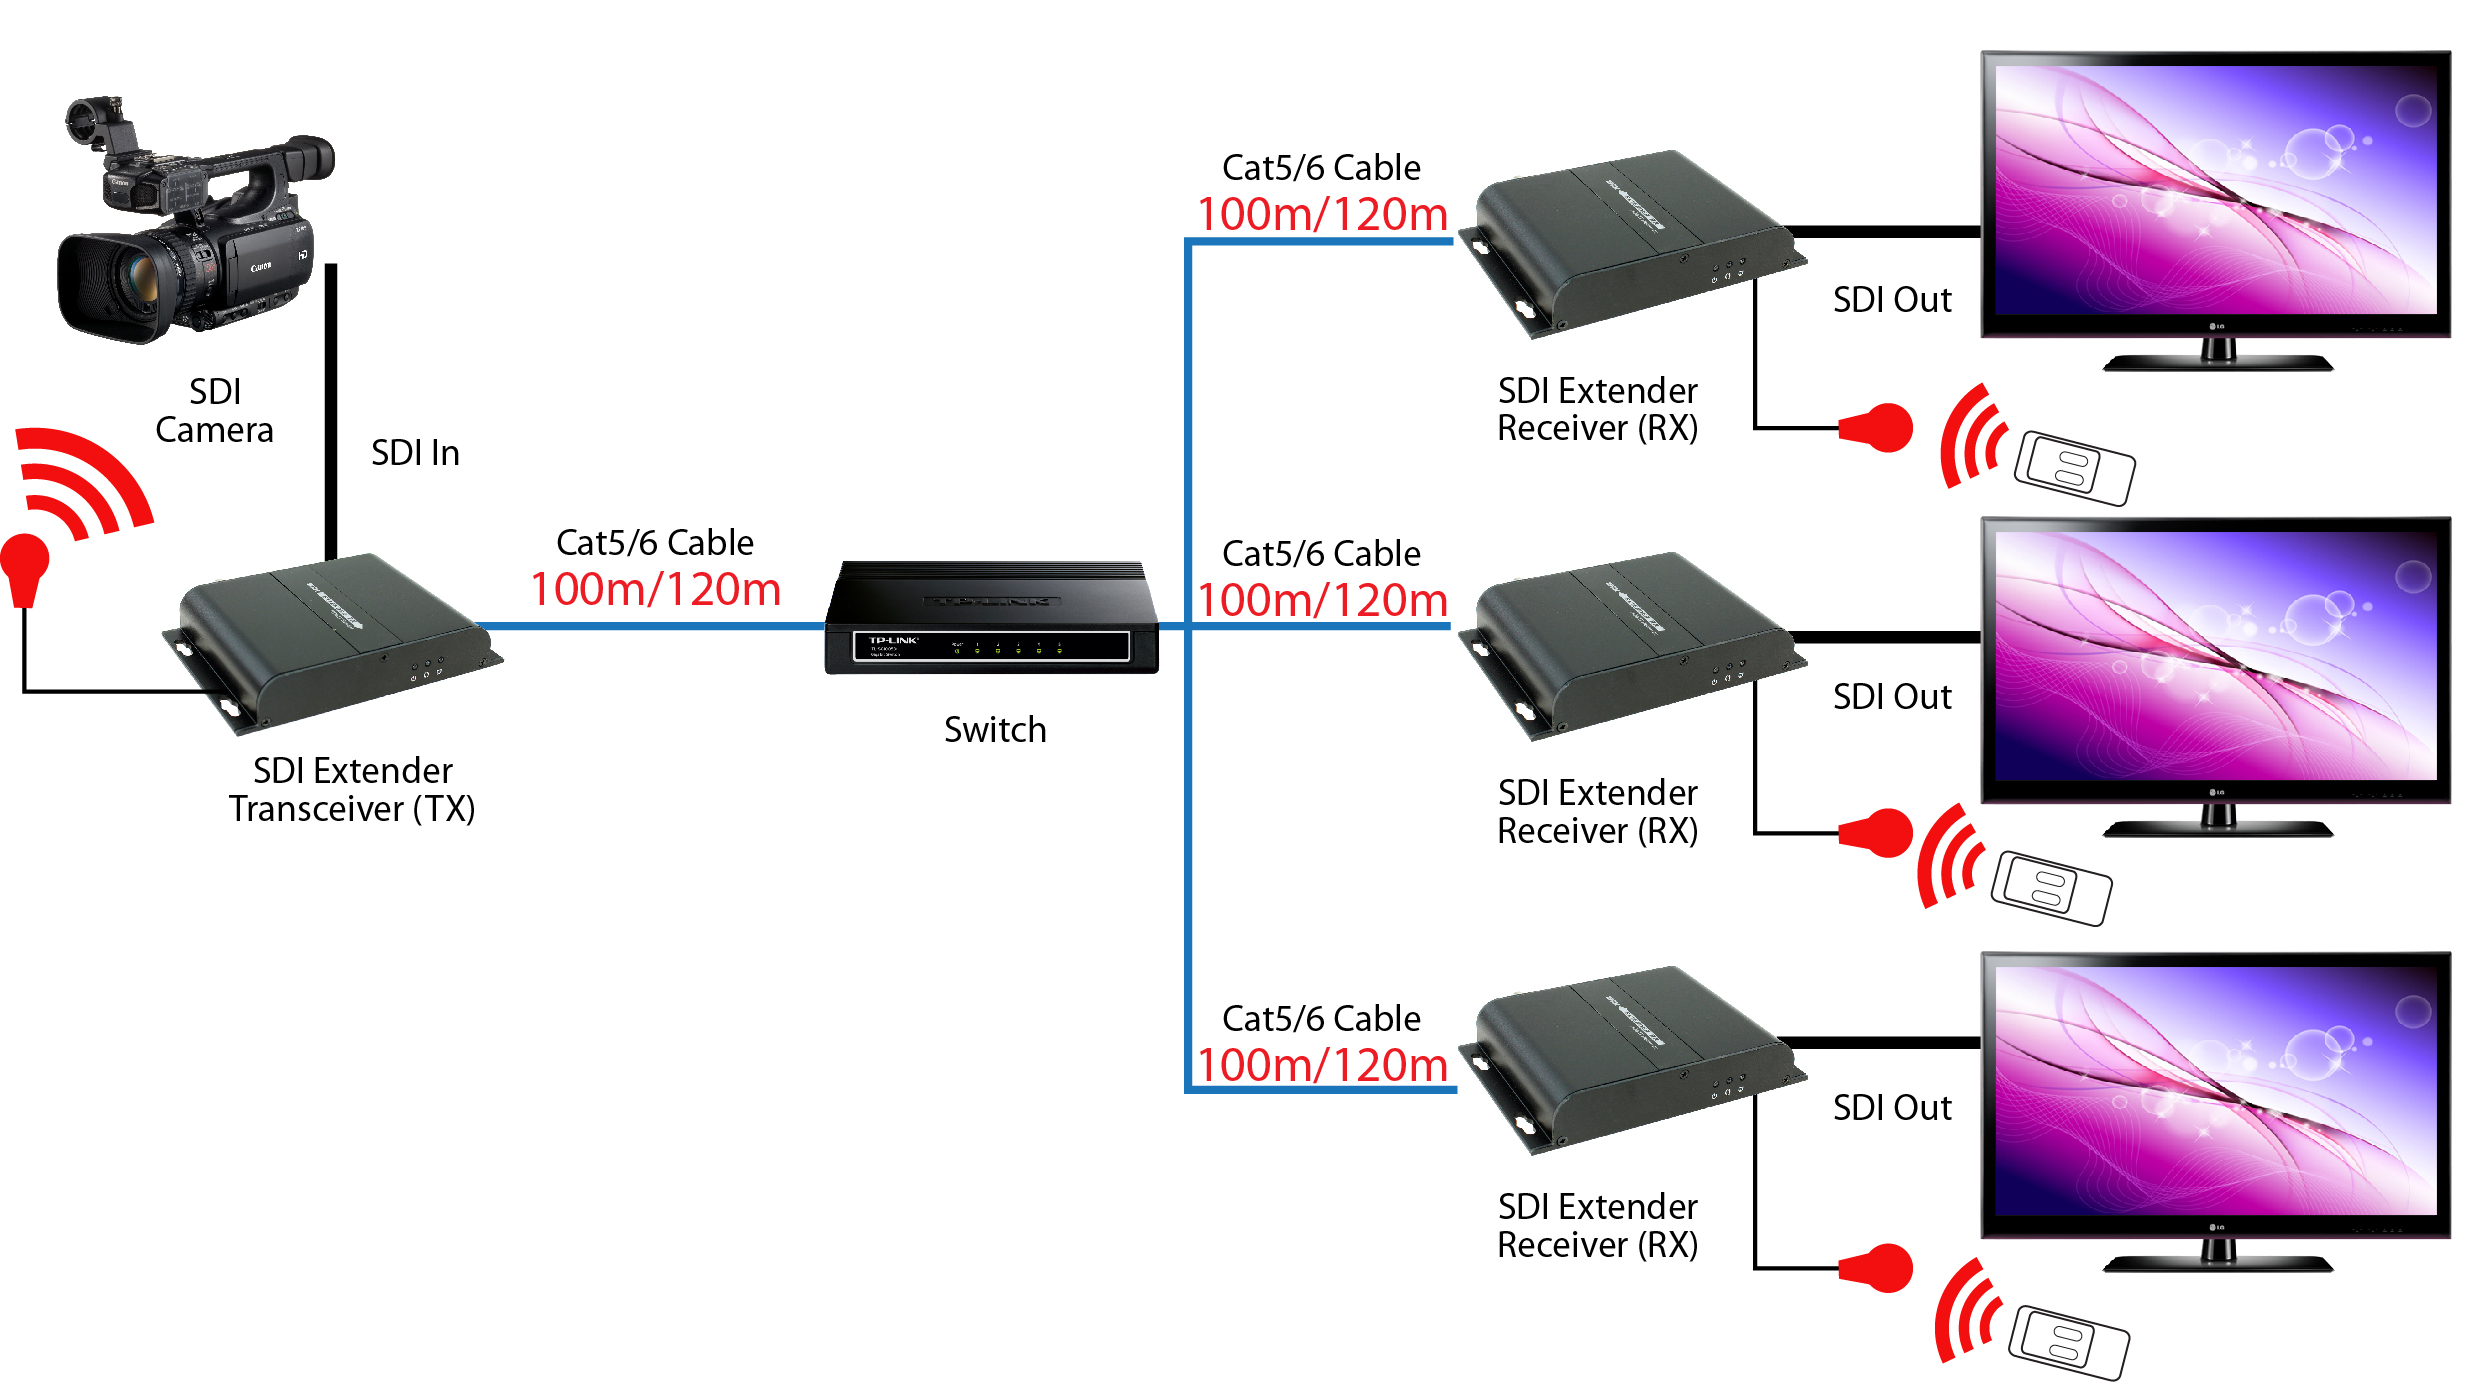 hdbitt sdi extender over ethernet w ir up to 394ft split to more diagram 3 daisy chain connection